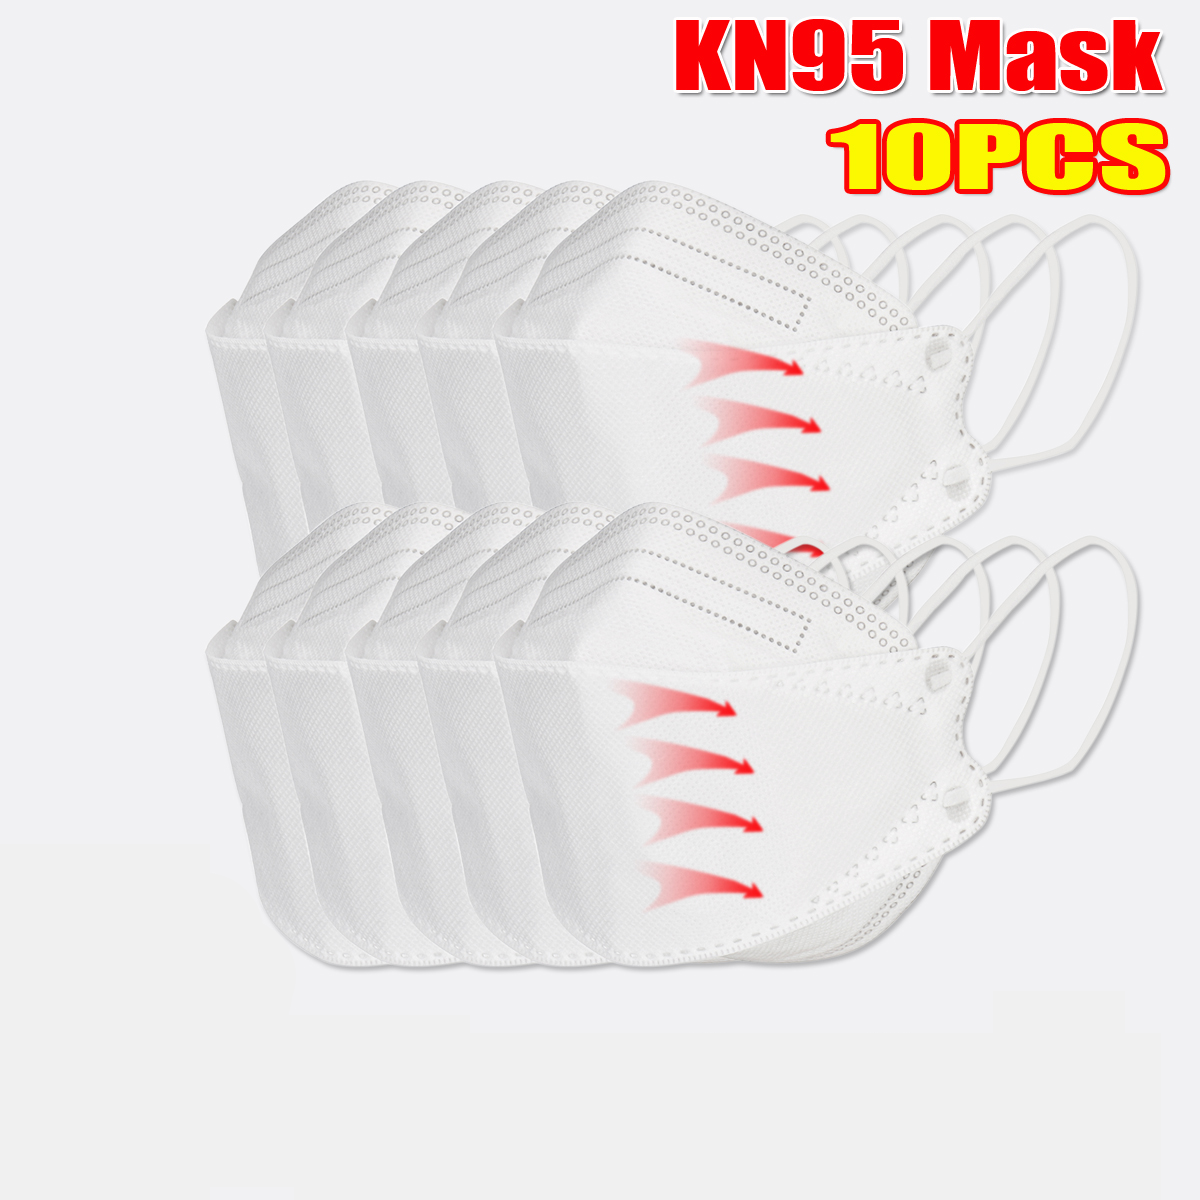 10 Pcs / Pack of KN95 MasksCE Certification Passed The GB-2626-KN95 Test PM2.5 Filter Mask